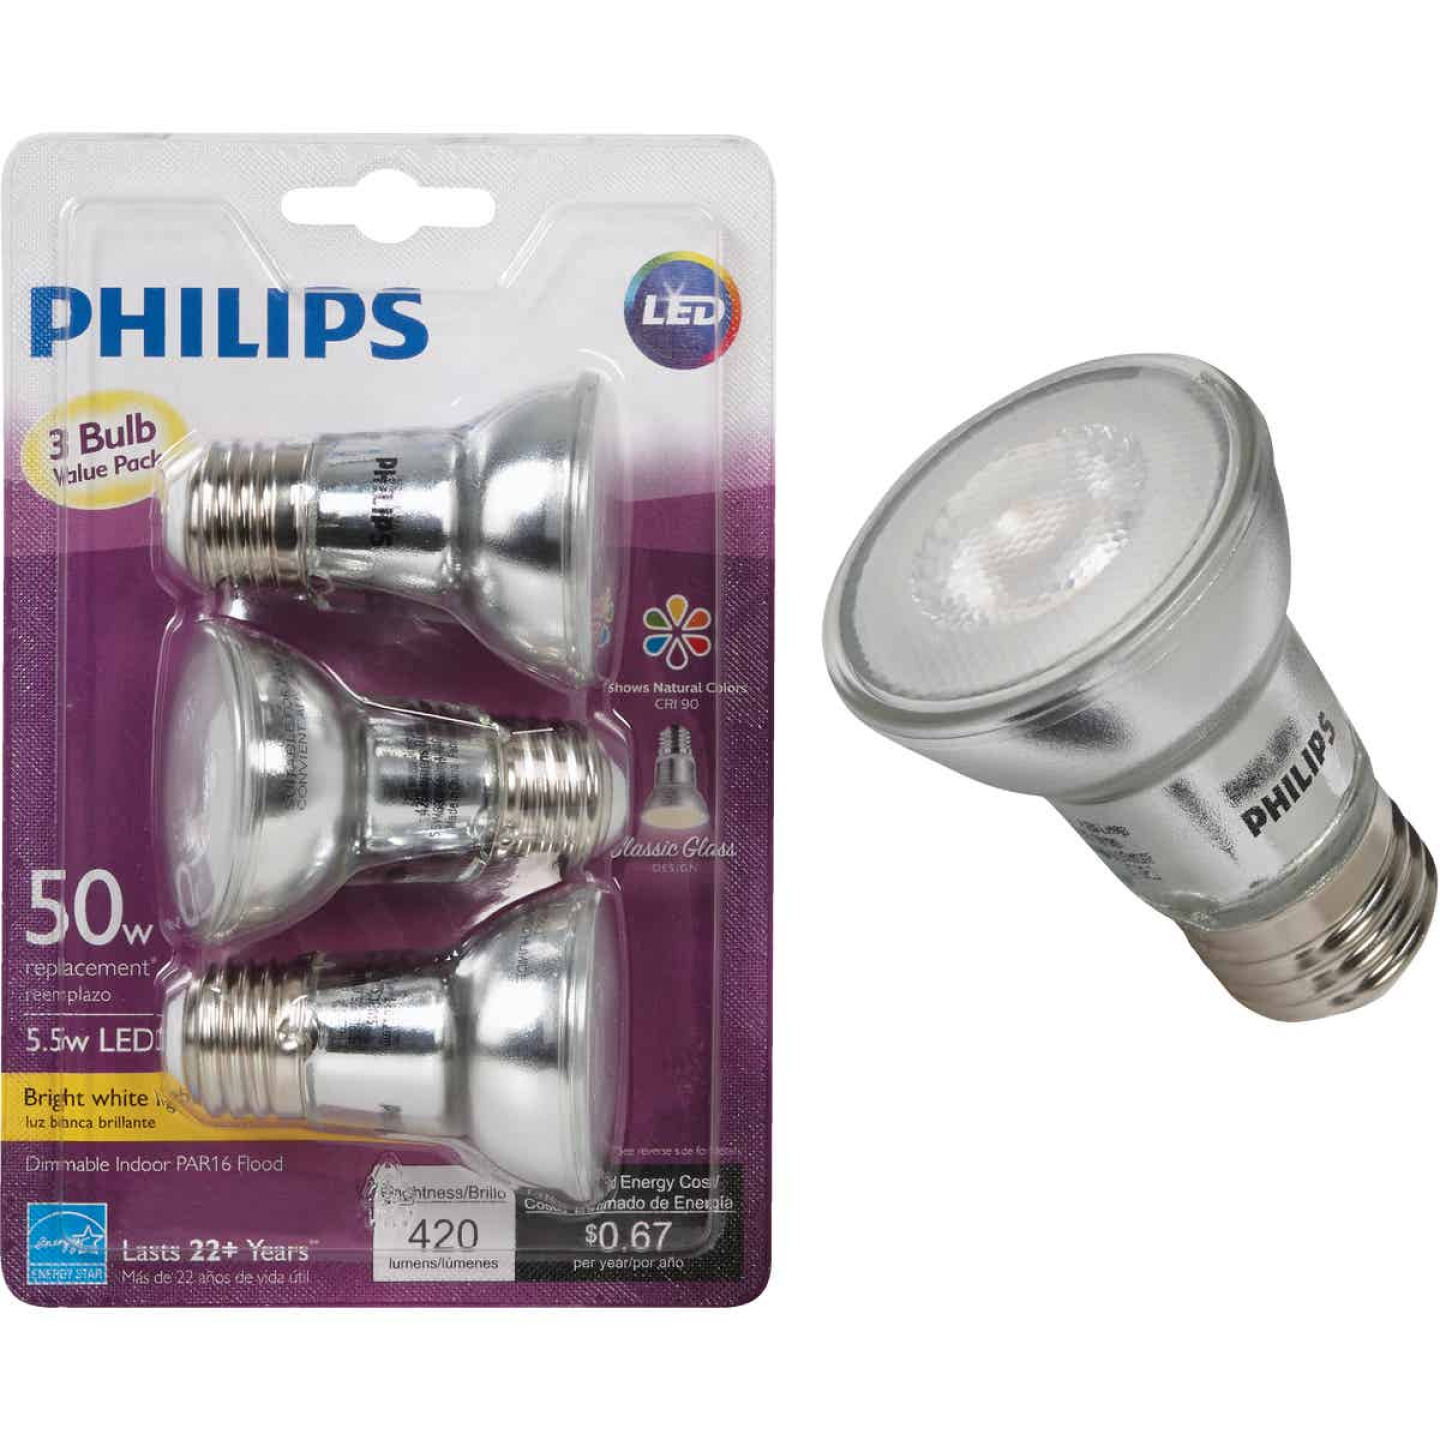 Philips 50W Equivalent Bright White PAR16 Medium Dimmable LED Floodlight Light Bulb (3-Pack) Image 1